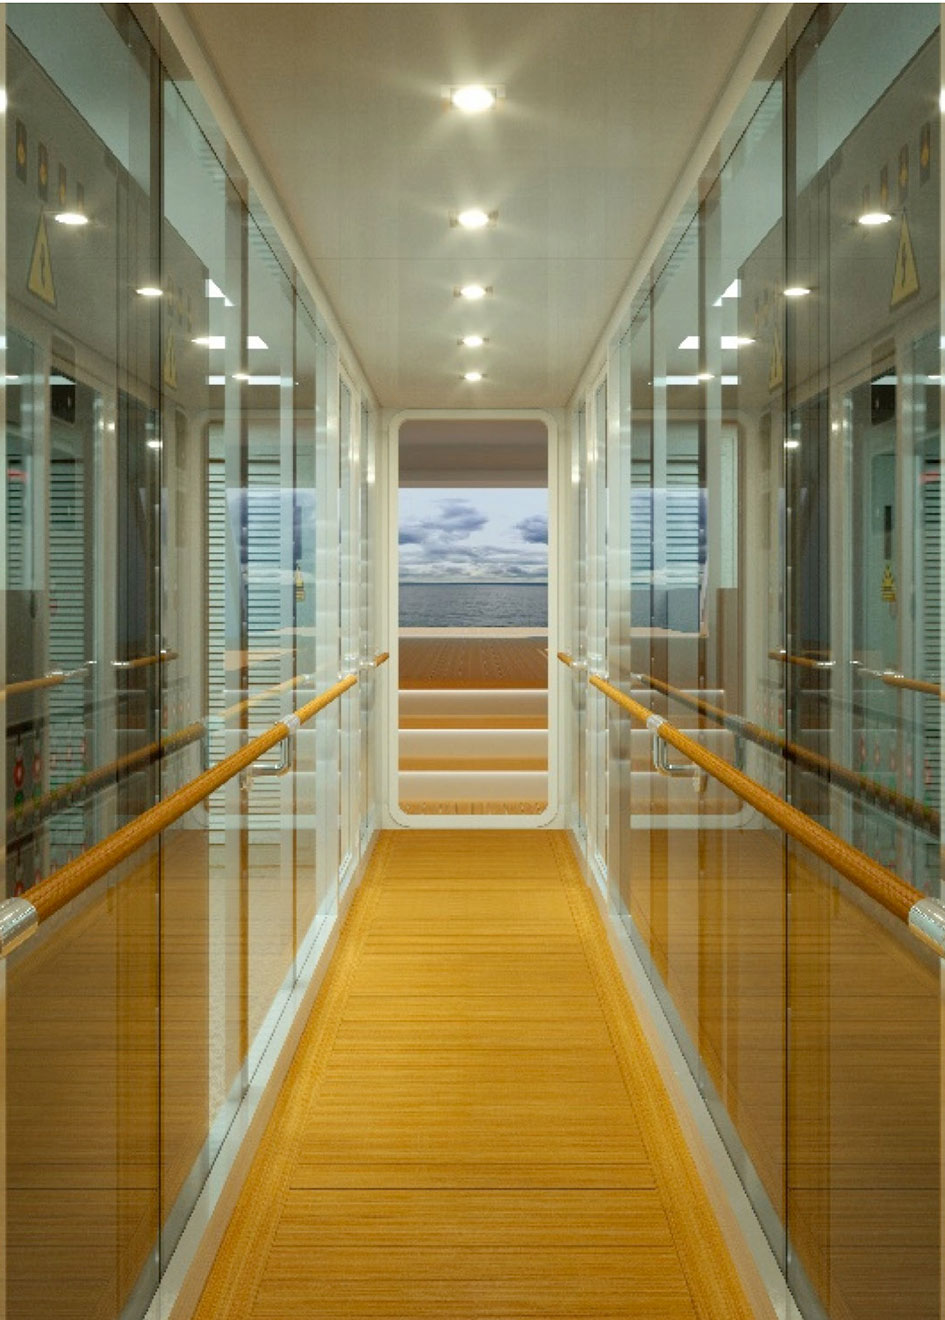 the-engine-room-of-the-sanlorenzo-500exp-e-motion-yacht